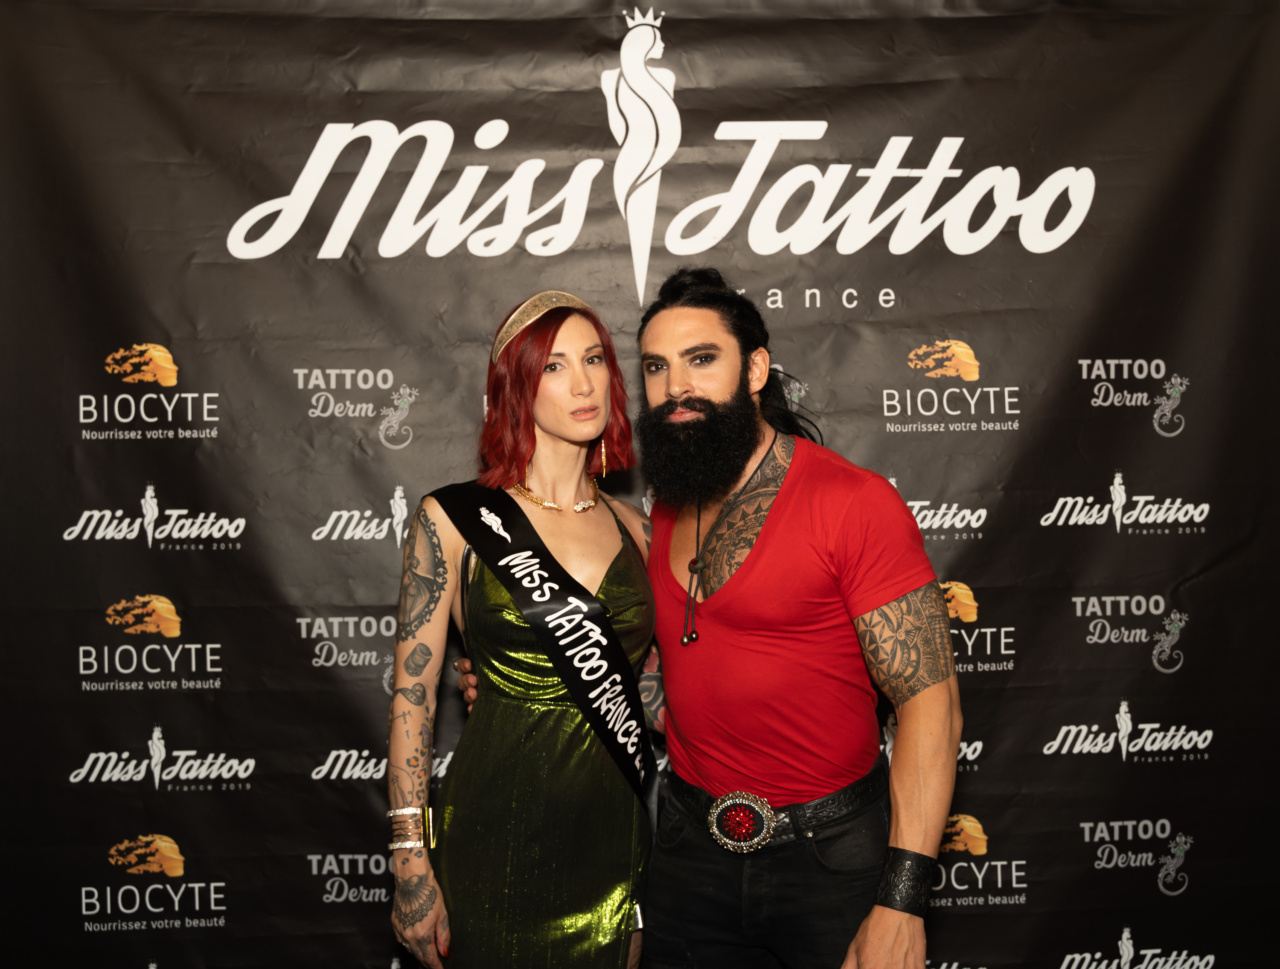 MISS TATTOO FRANCE 2019